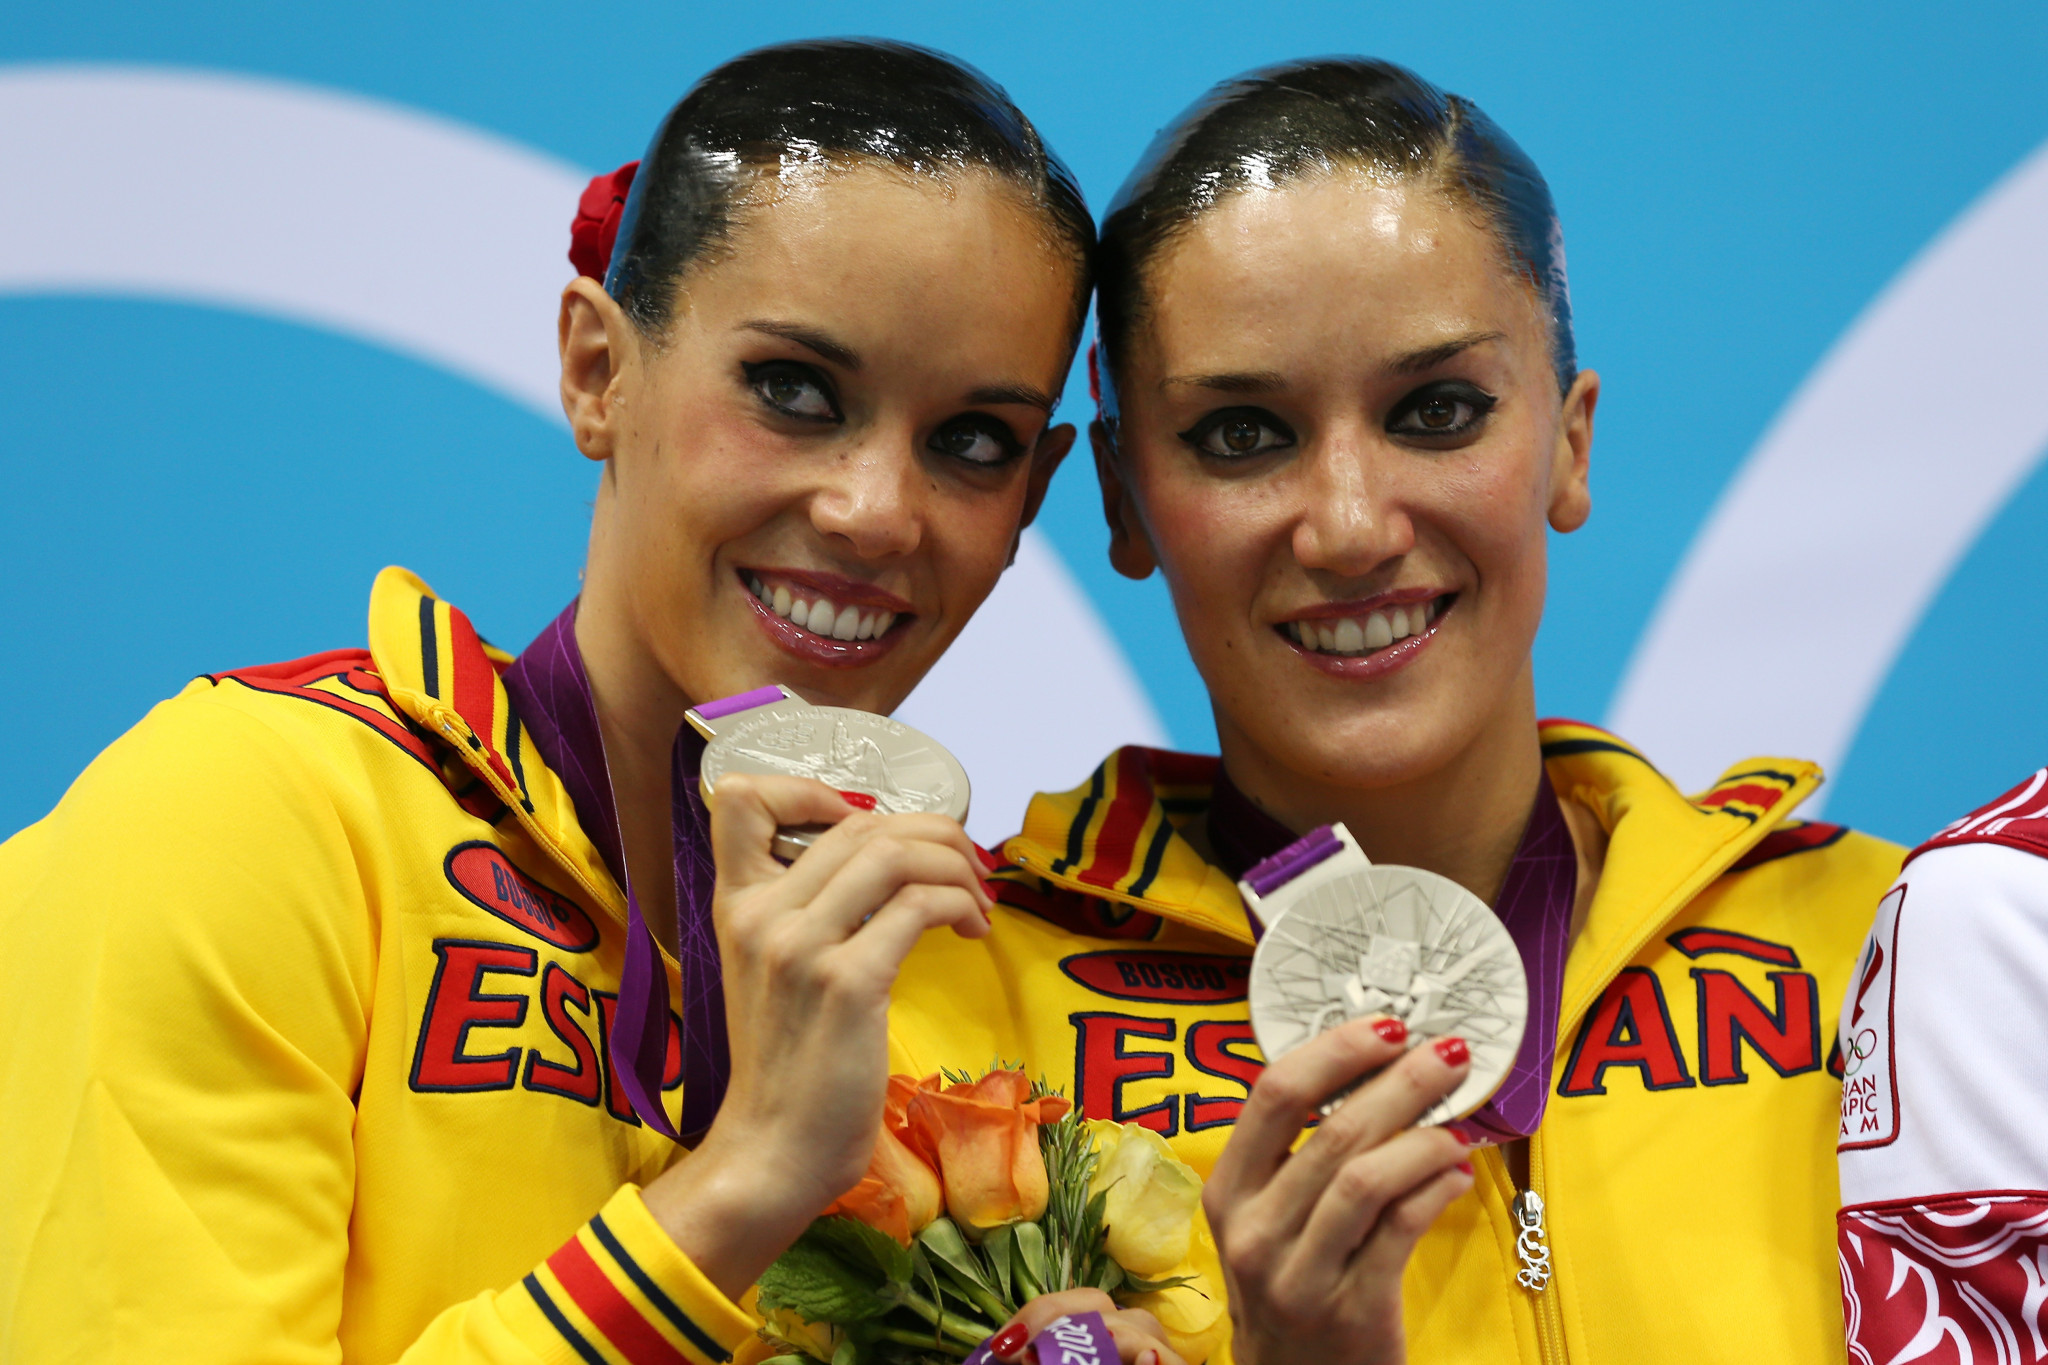 Andrea Fuentes of Spain, left, pictured with sister Tina, who tragically died last month ©Getty Images